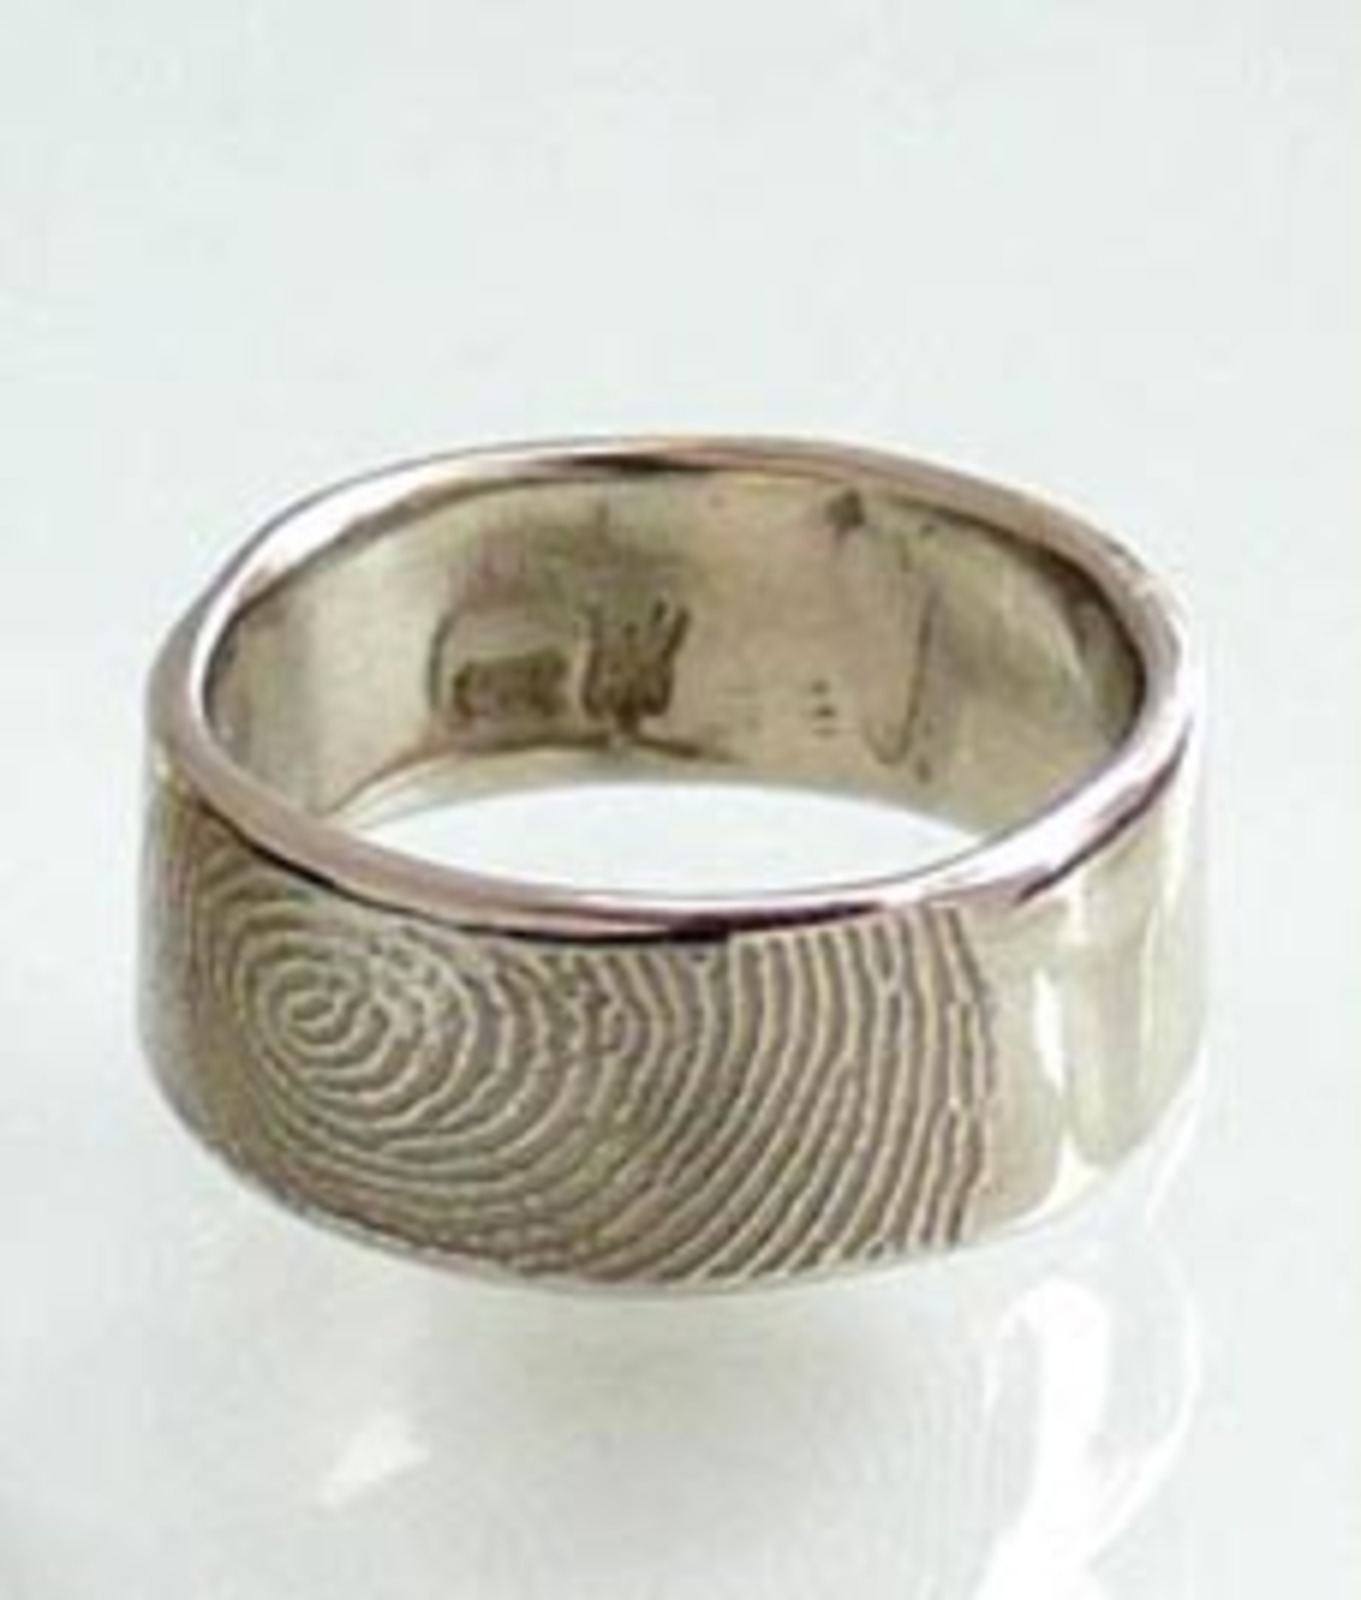 marion wedding print philip fingerprint ring category rapids s shop finger cedar jewelry diamonds rings custom ia